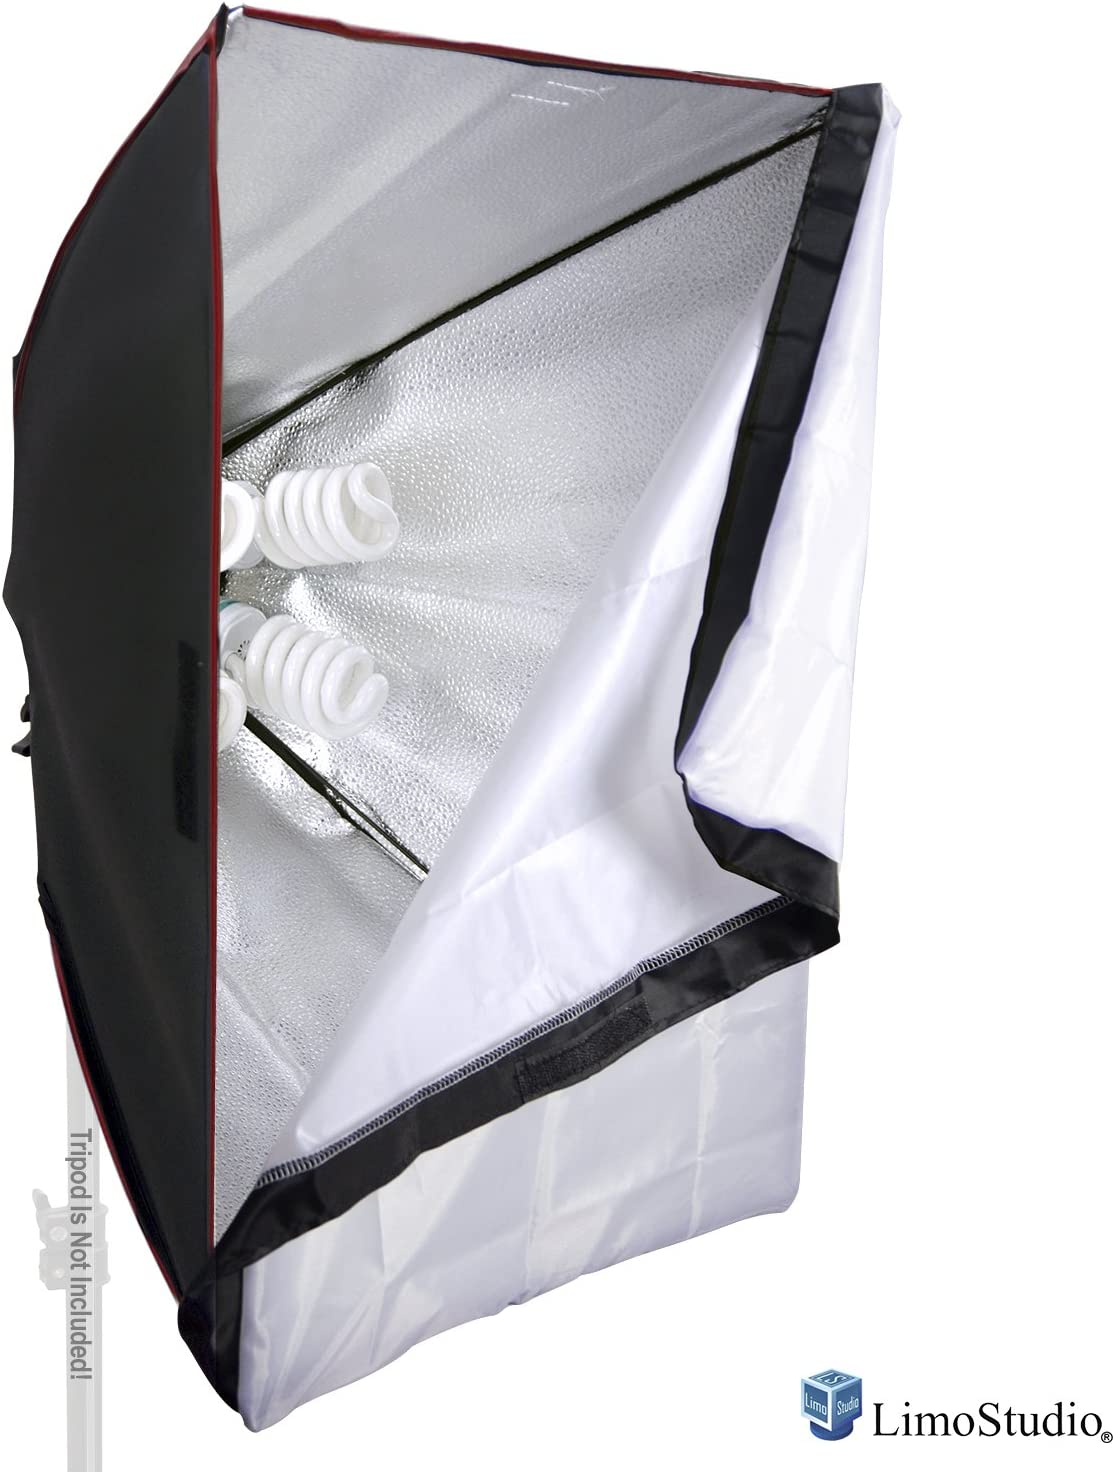 Photo Studio AGG2275 LimoStudio Large 24 inch by 36 inch Softbox with Individually Controlled Five Socket Bulb Base and Detachable Fabric Diffuser Cover for Photography and Video Shooting